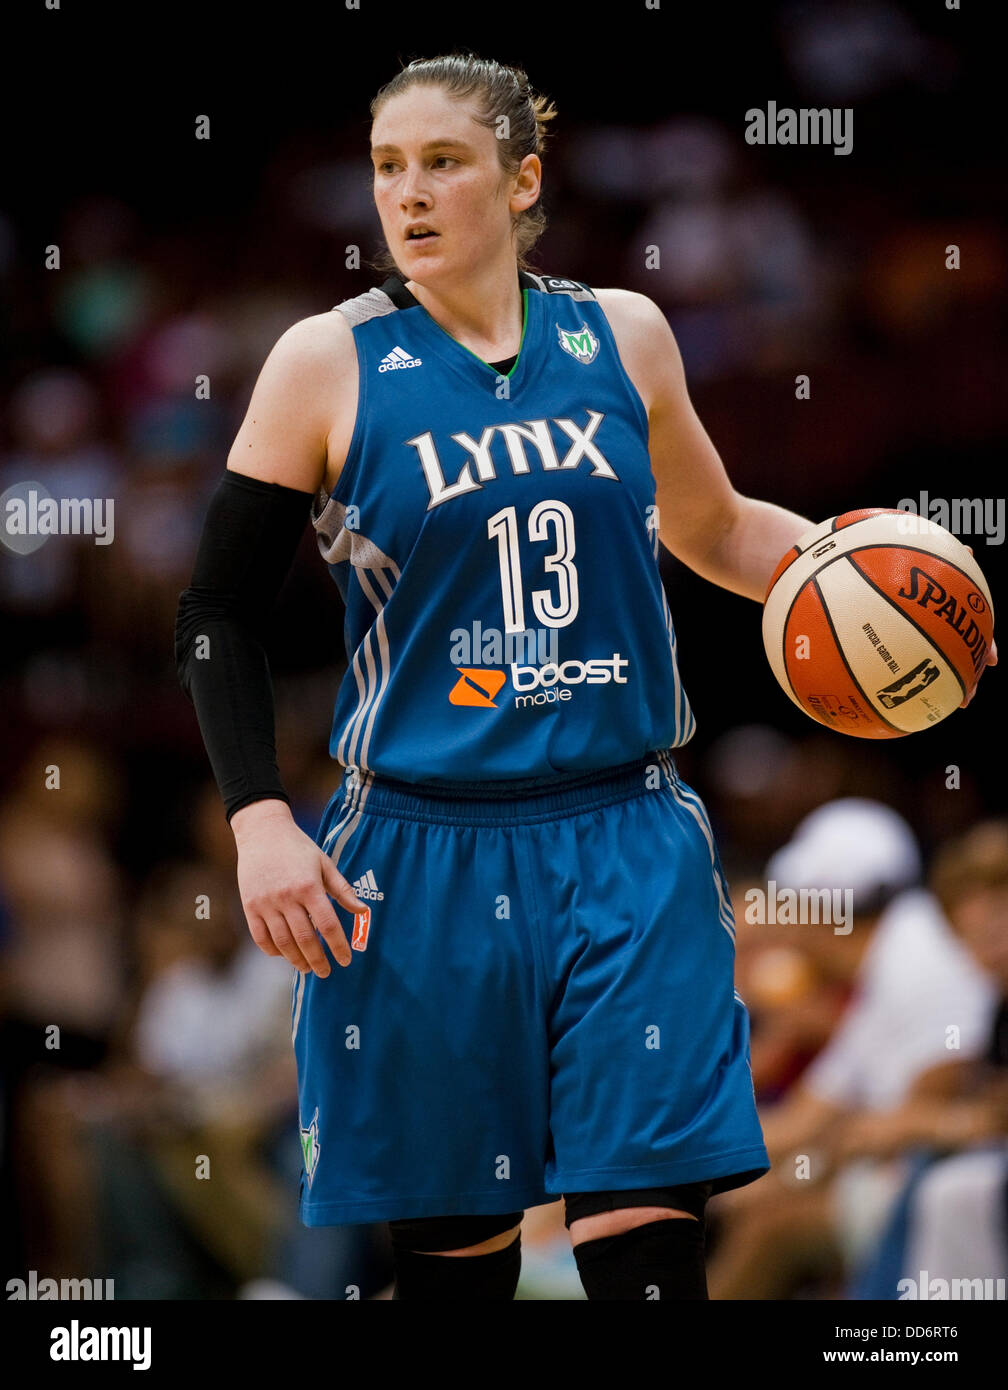 lindsay whalen jersey Cheaper Than Retail Price> Buy Clothing ...